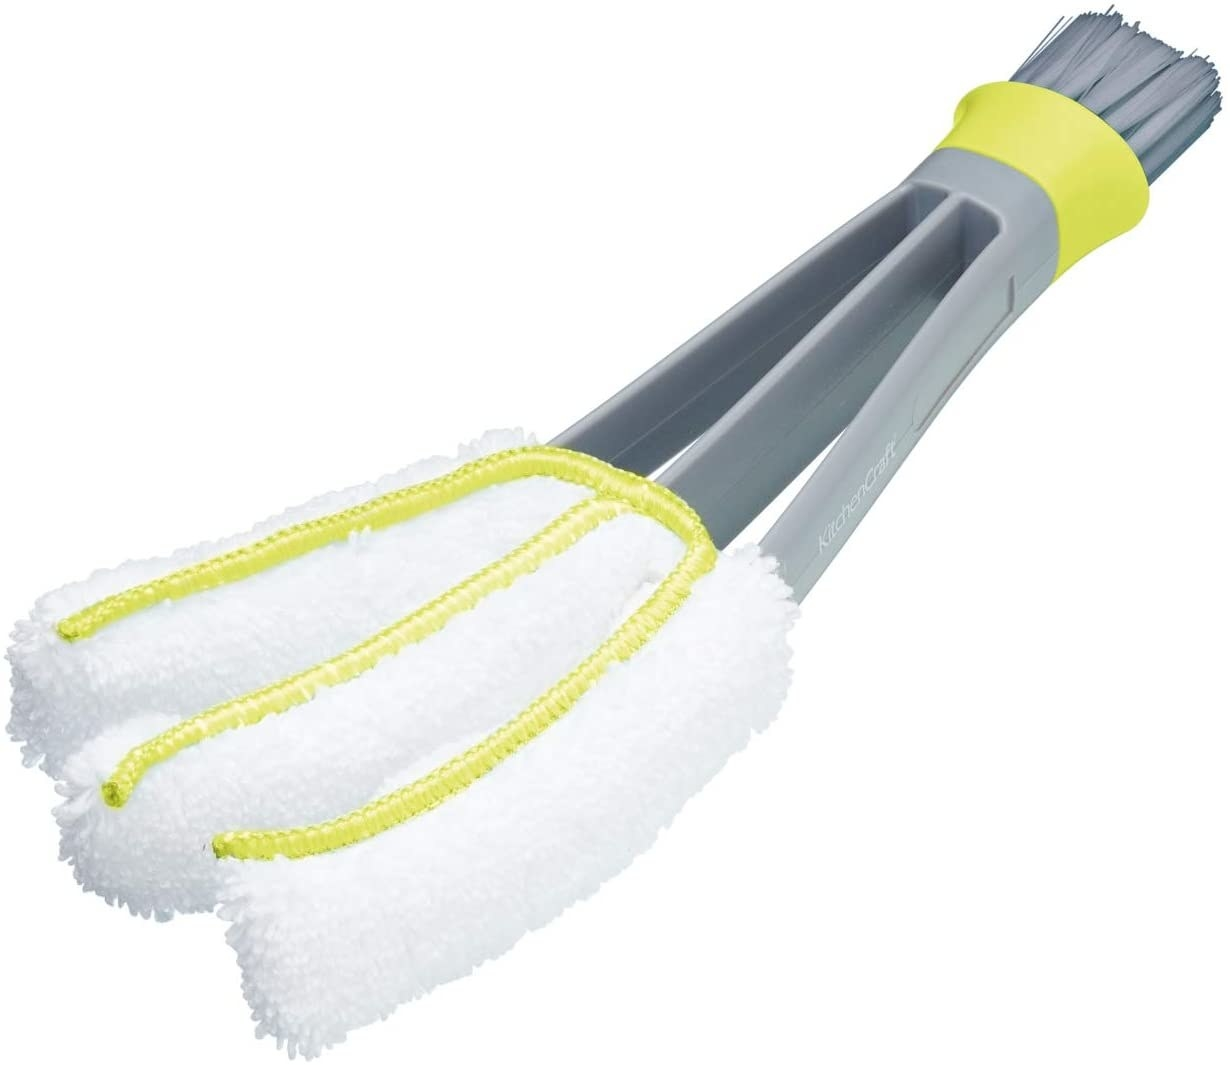 Cleaning brush with multiple microfibre-covered arms